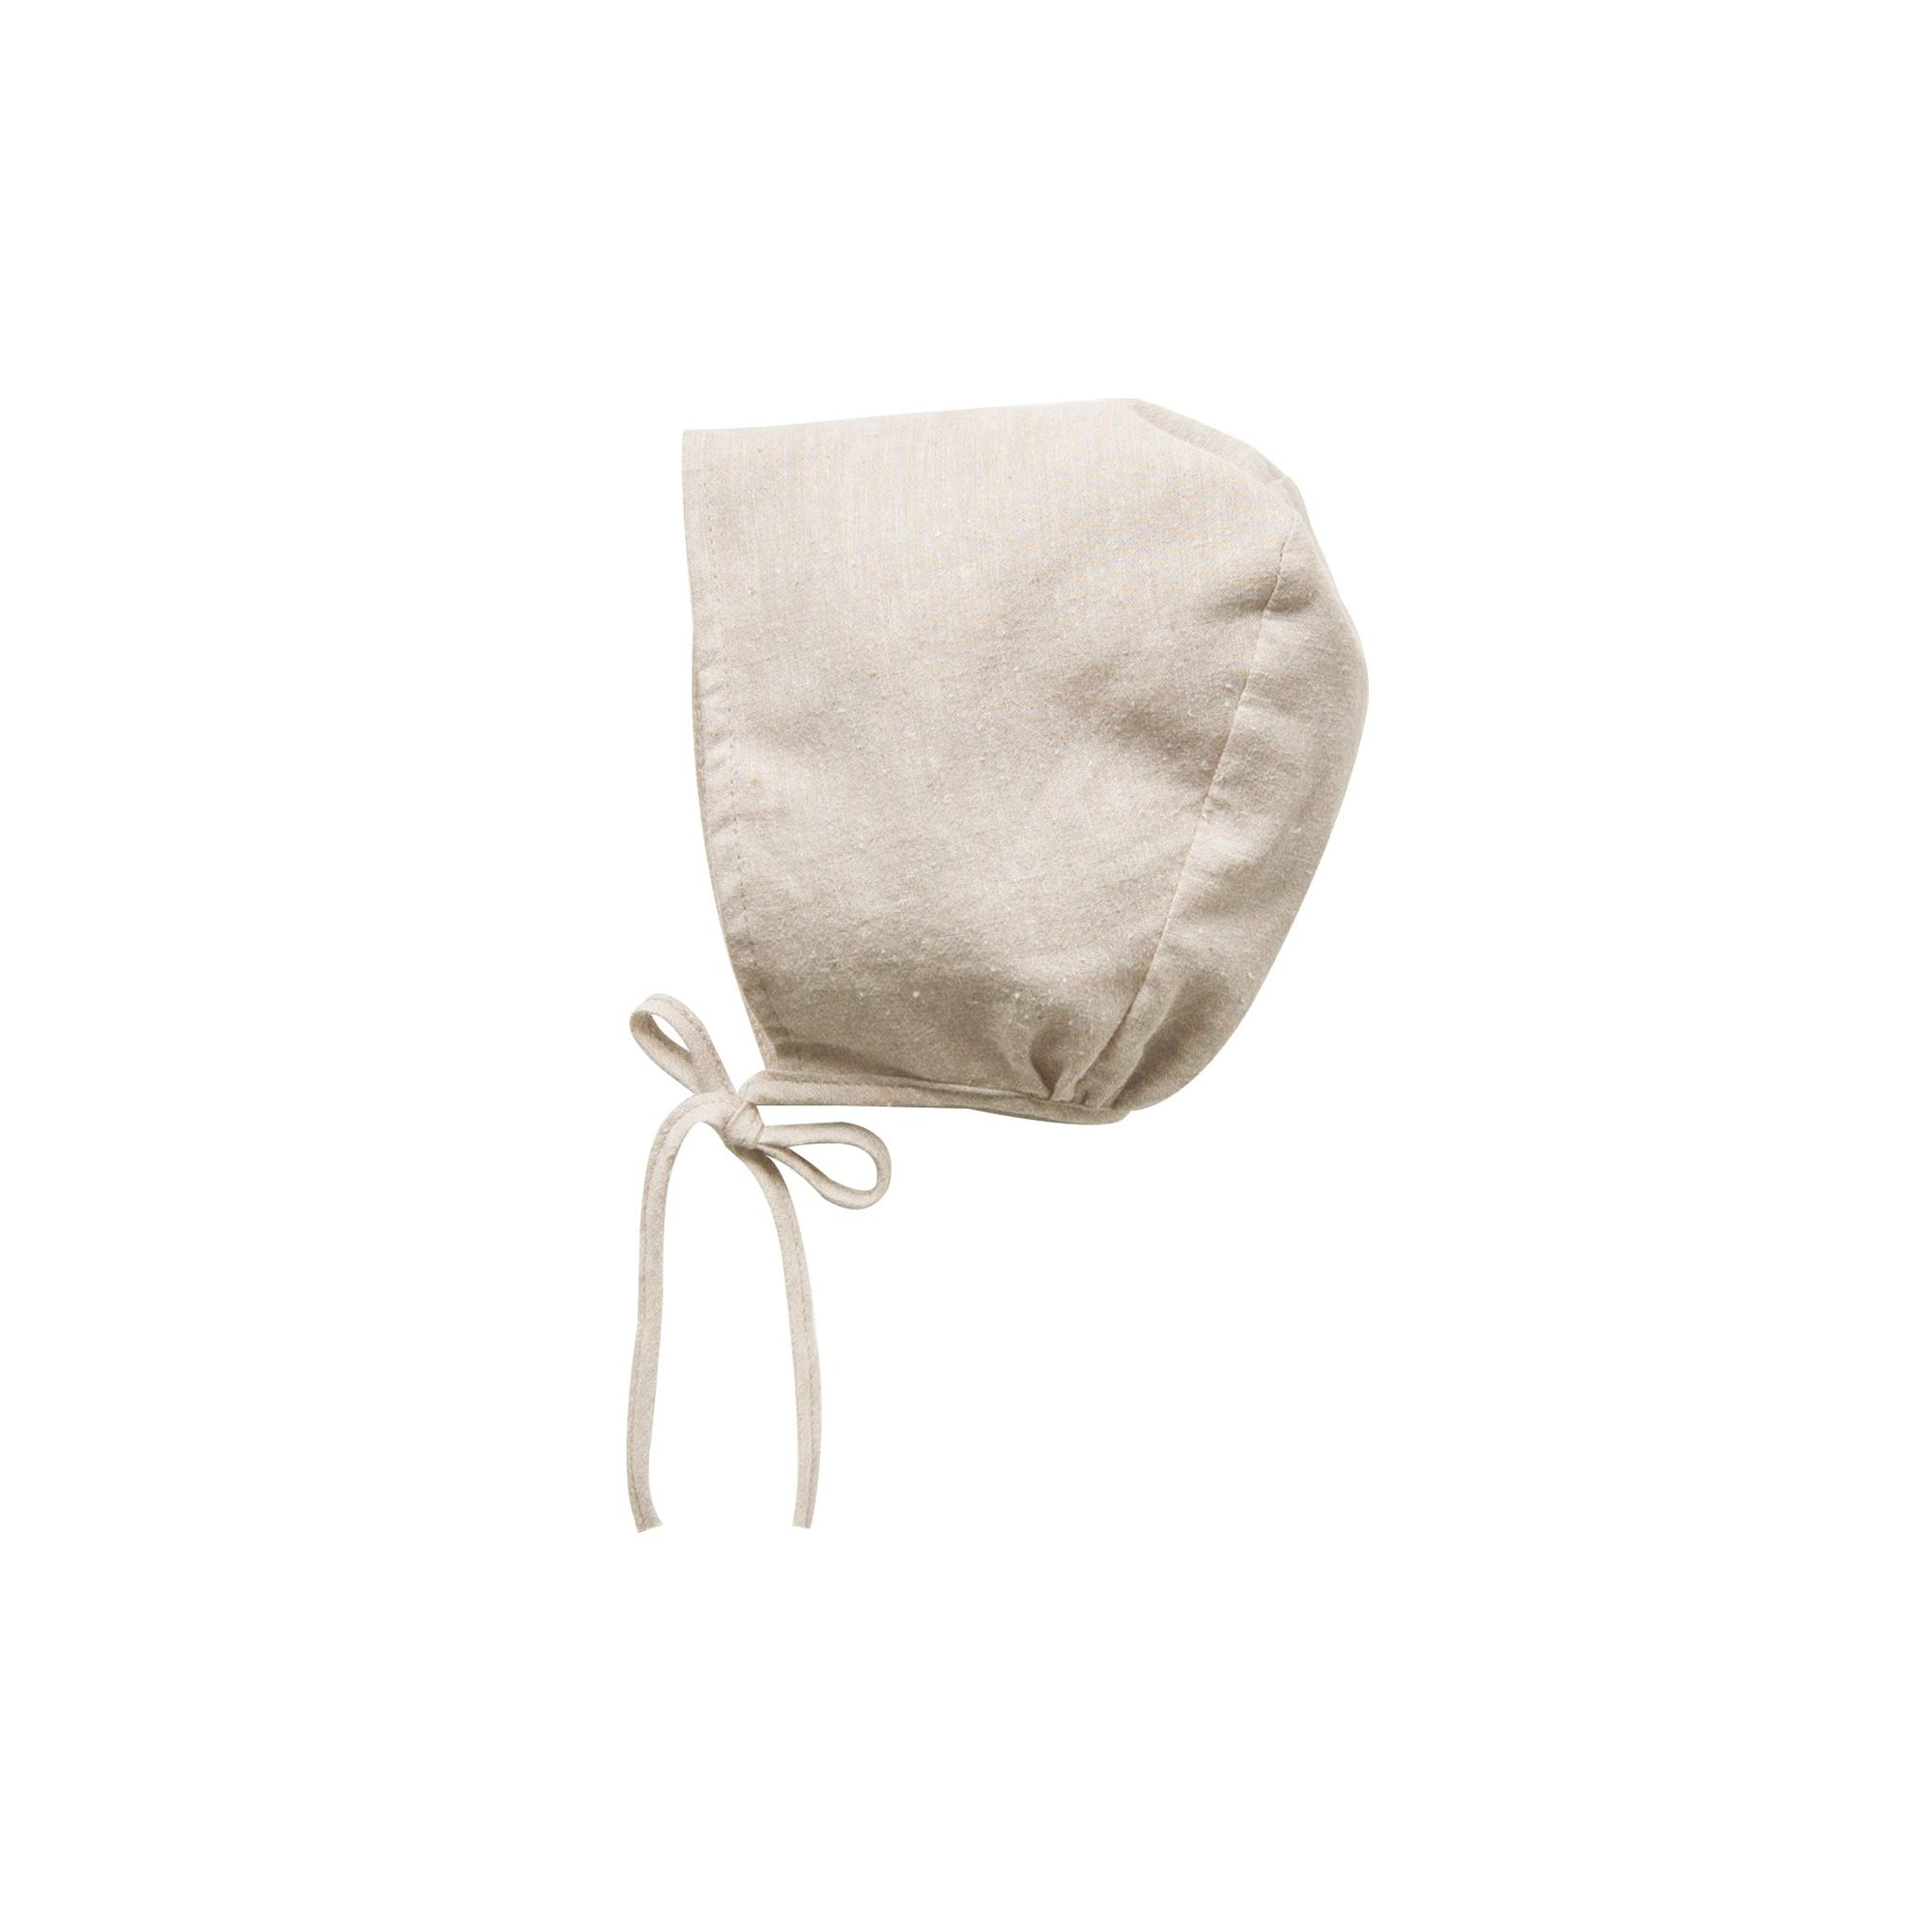 Go Gently Nation Woven Bonnet, Wheat